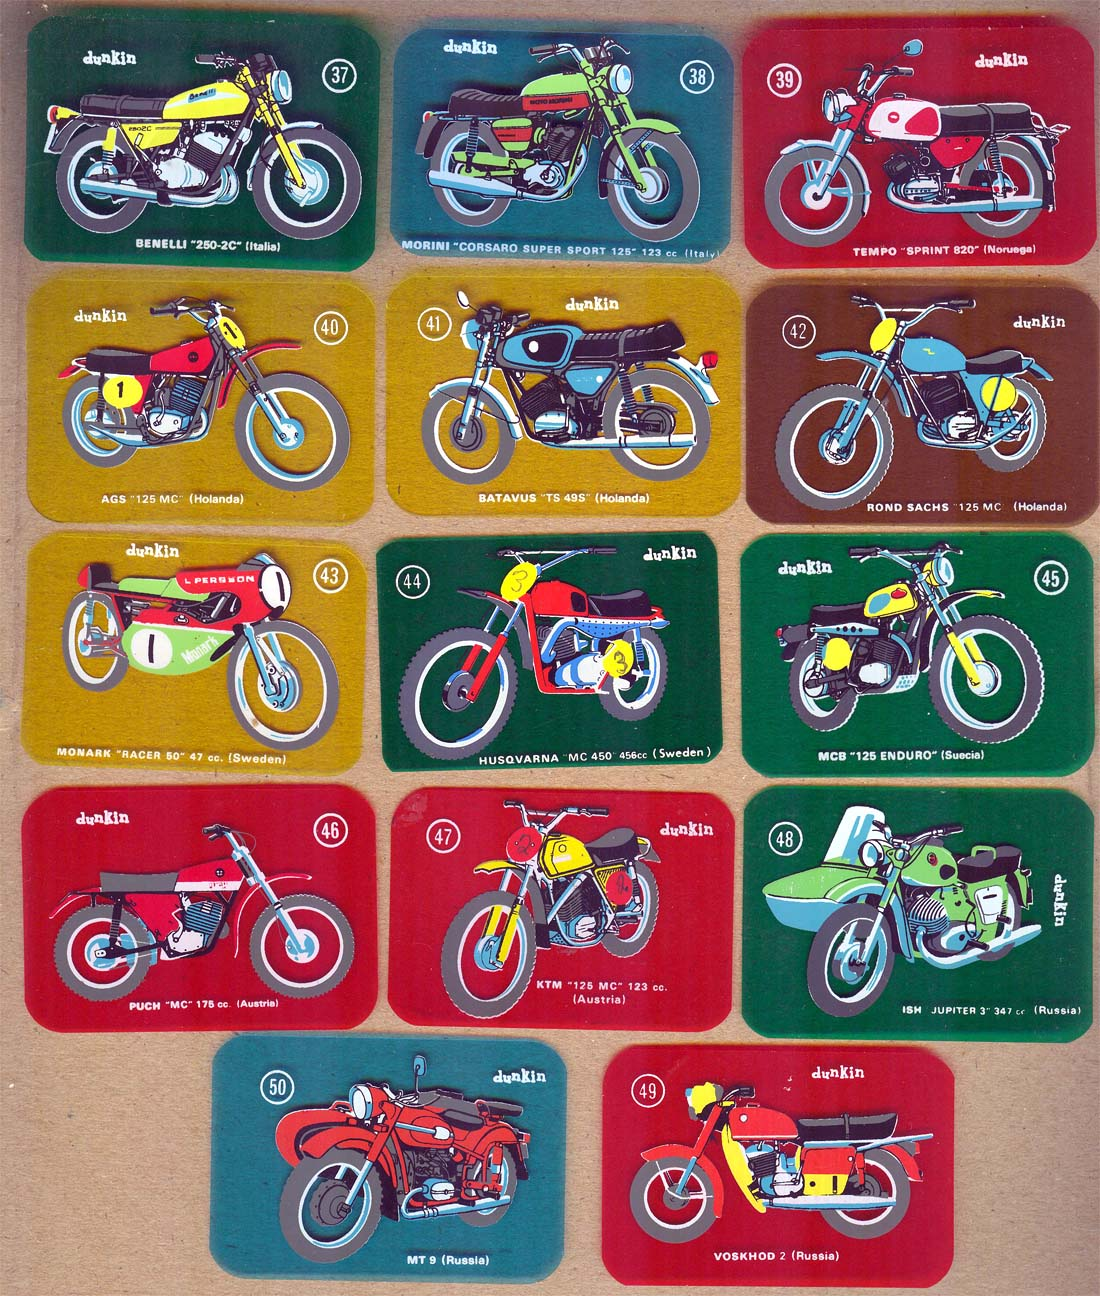 Las motos del chicle Dunkin 67mkie